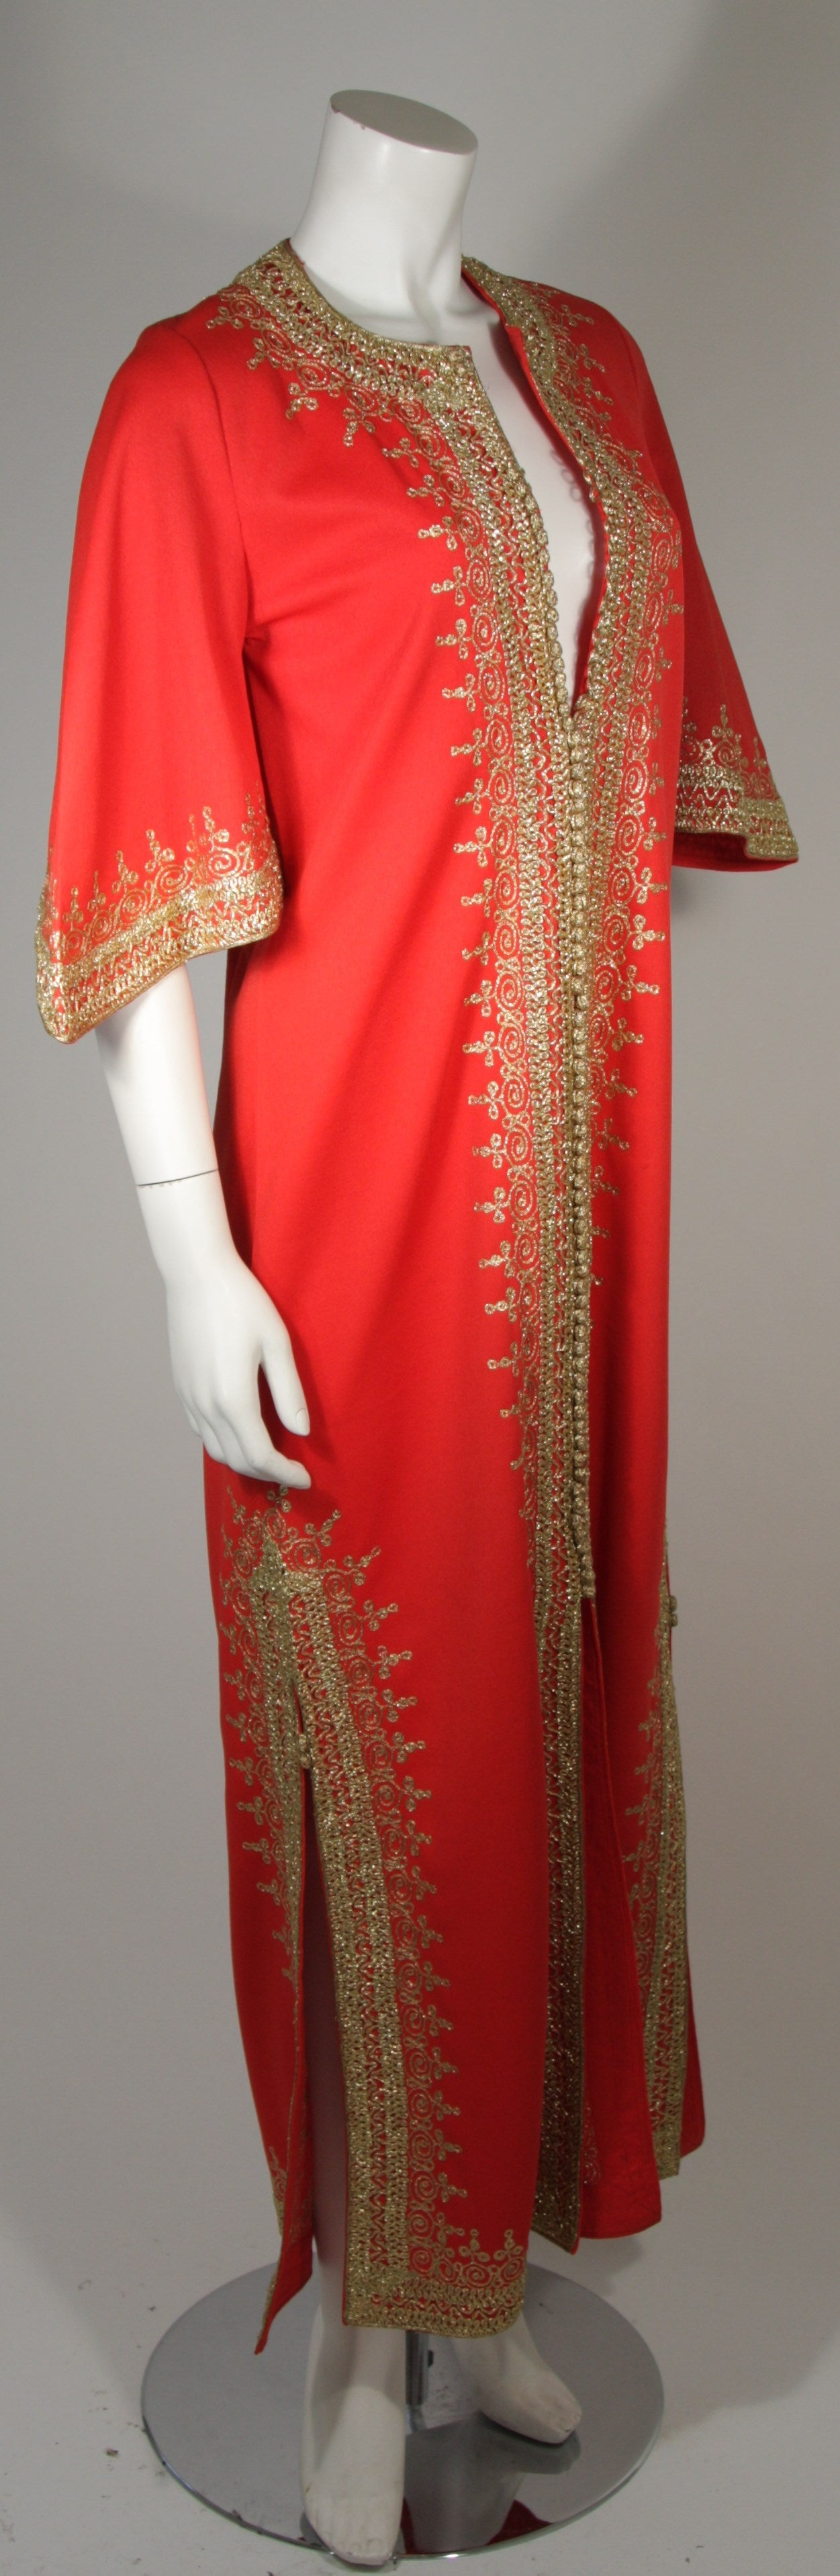 Custom Orange and Gold Indian Kaftan Size Small In Excellent Condition For Sale In Los Angeles, CA